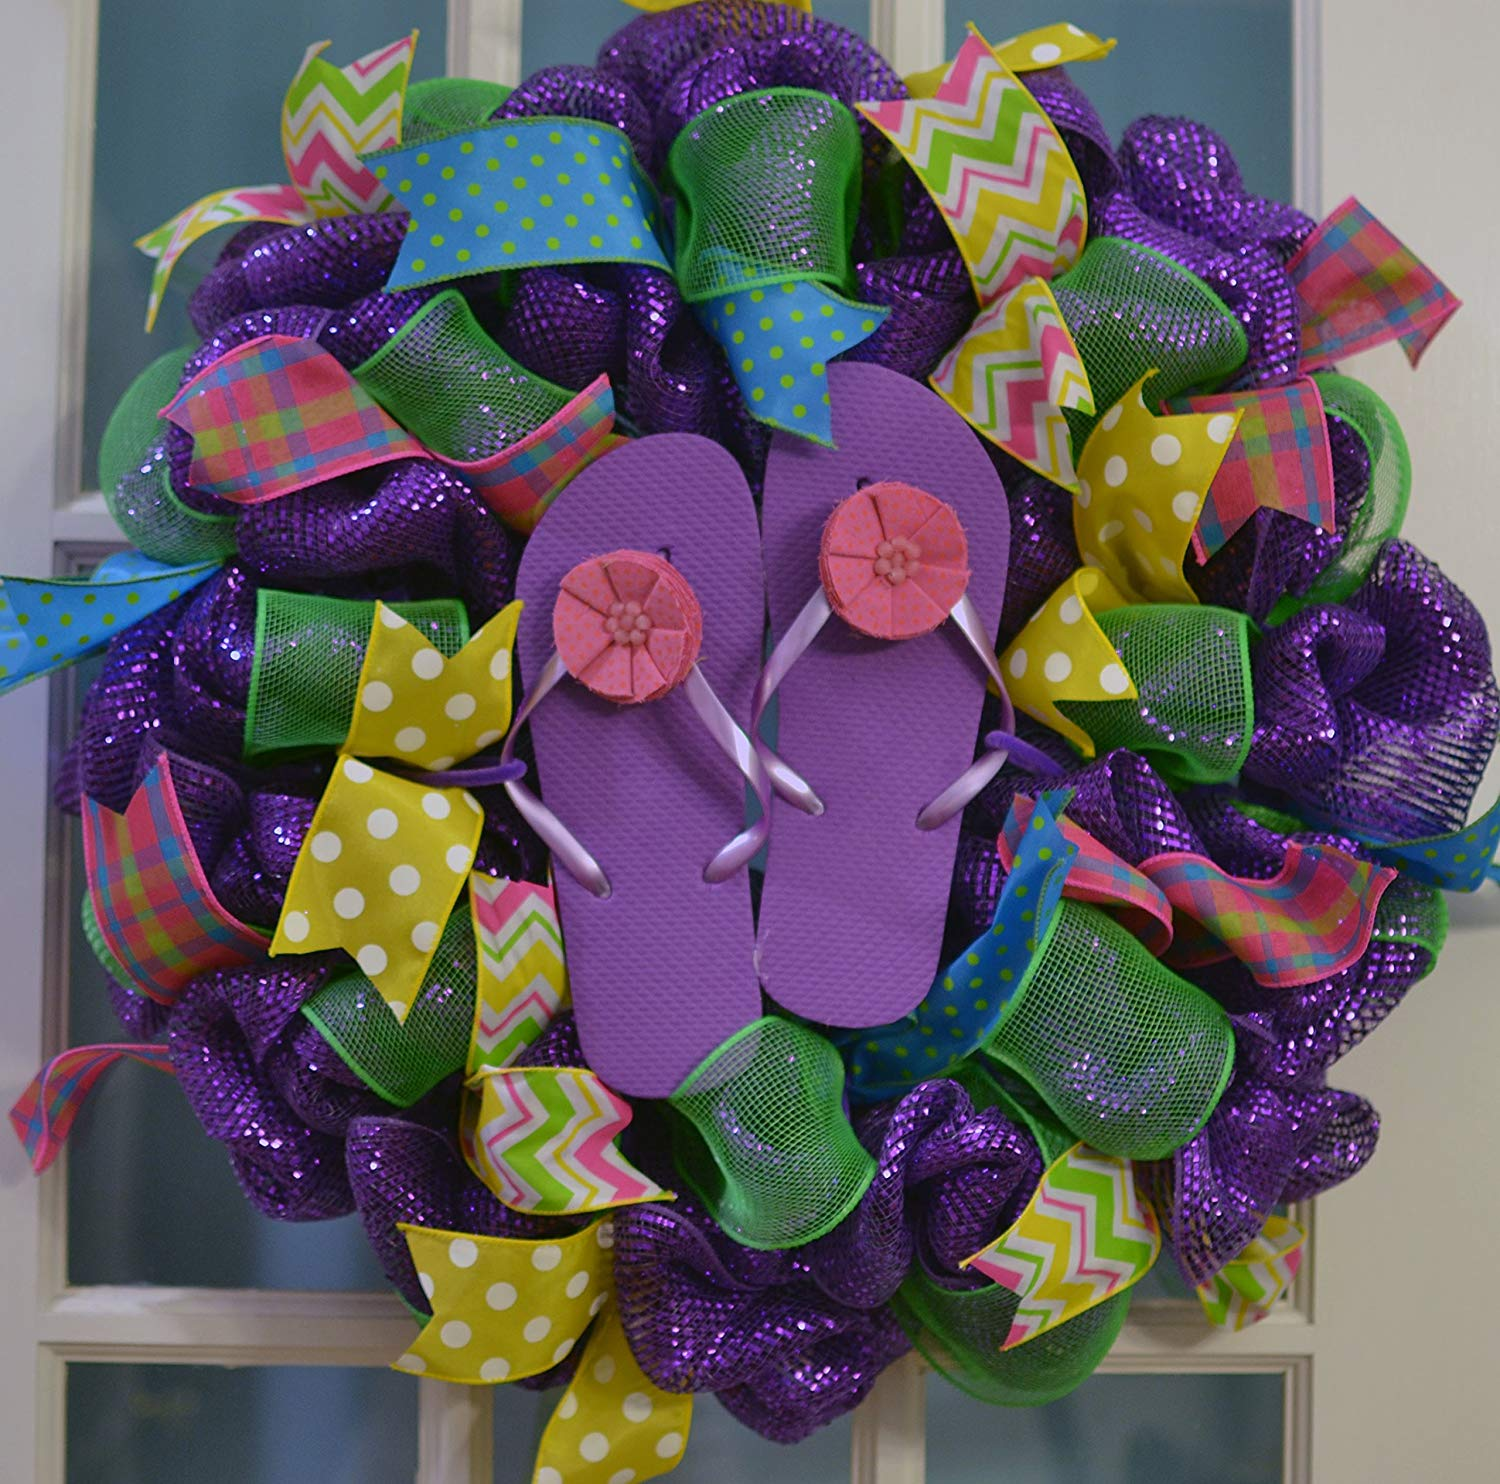 ea50590e5 Get Quotations · Summer spring beach lake ocean flip flop deco mesh wreath   Purple Yellow Lime Green Turquoise